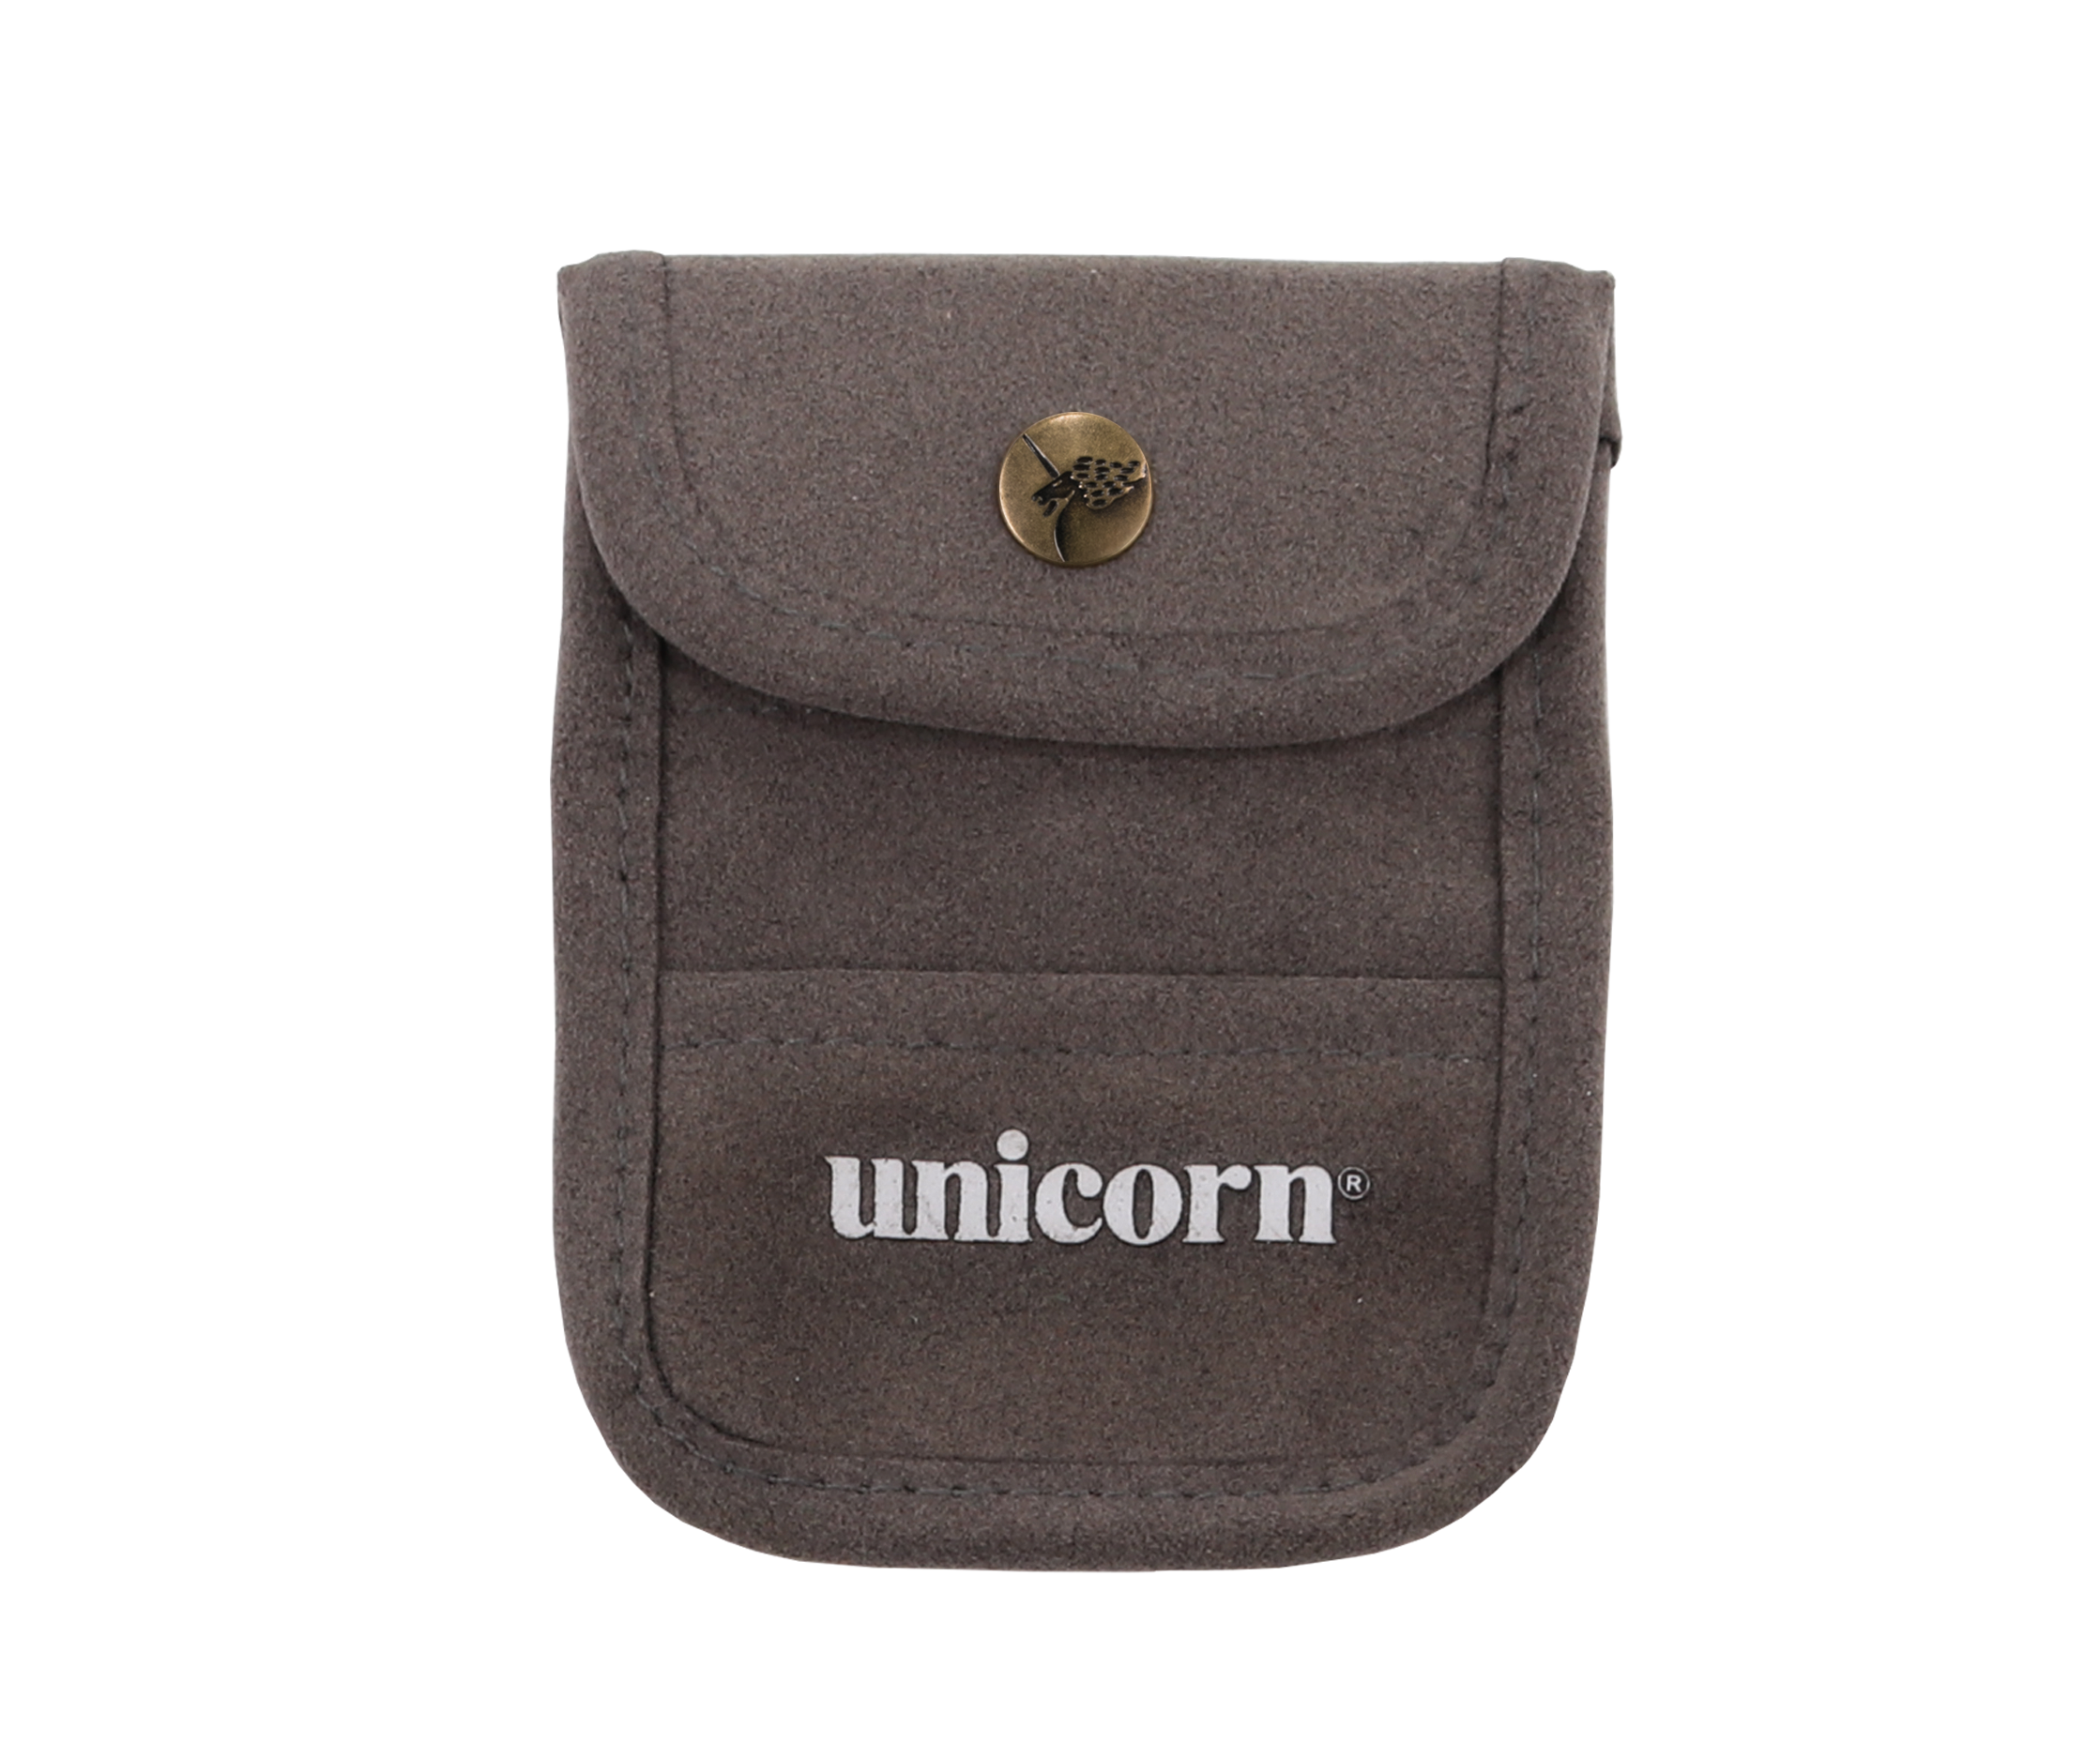 Accessory Pouch - Grey Flocked Leather